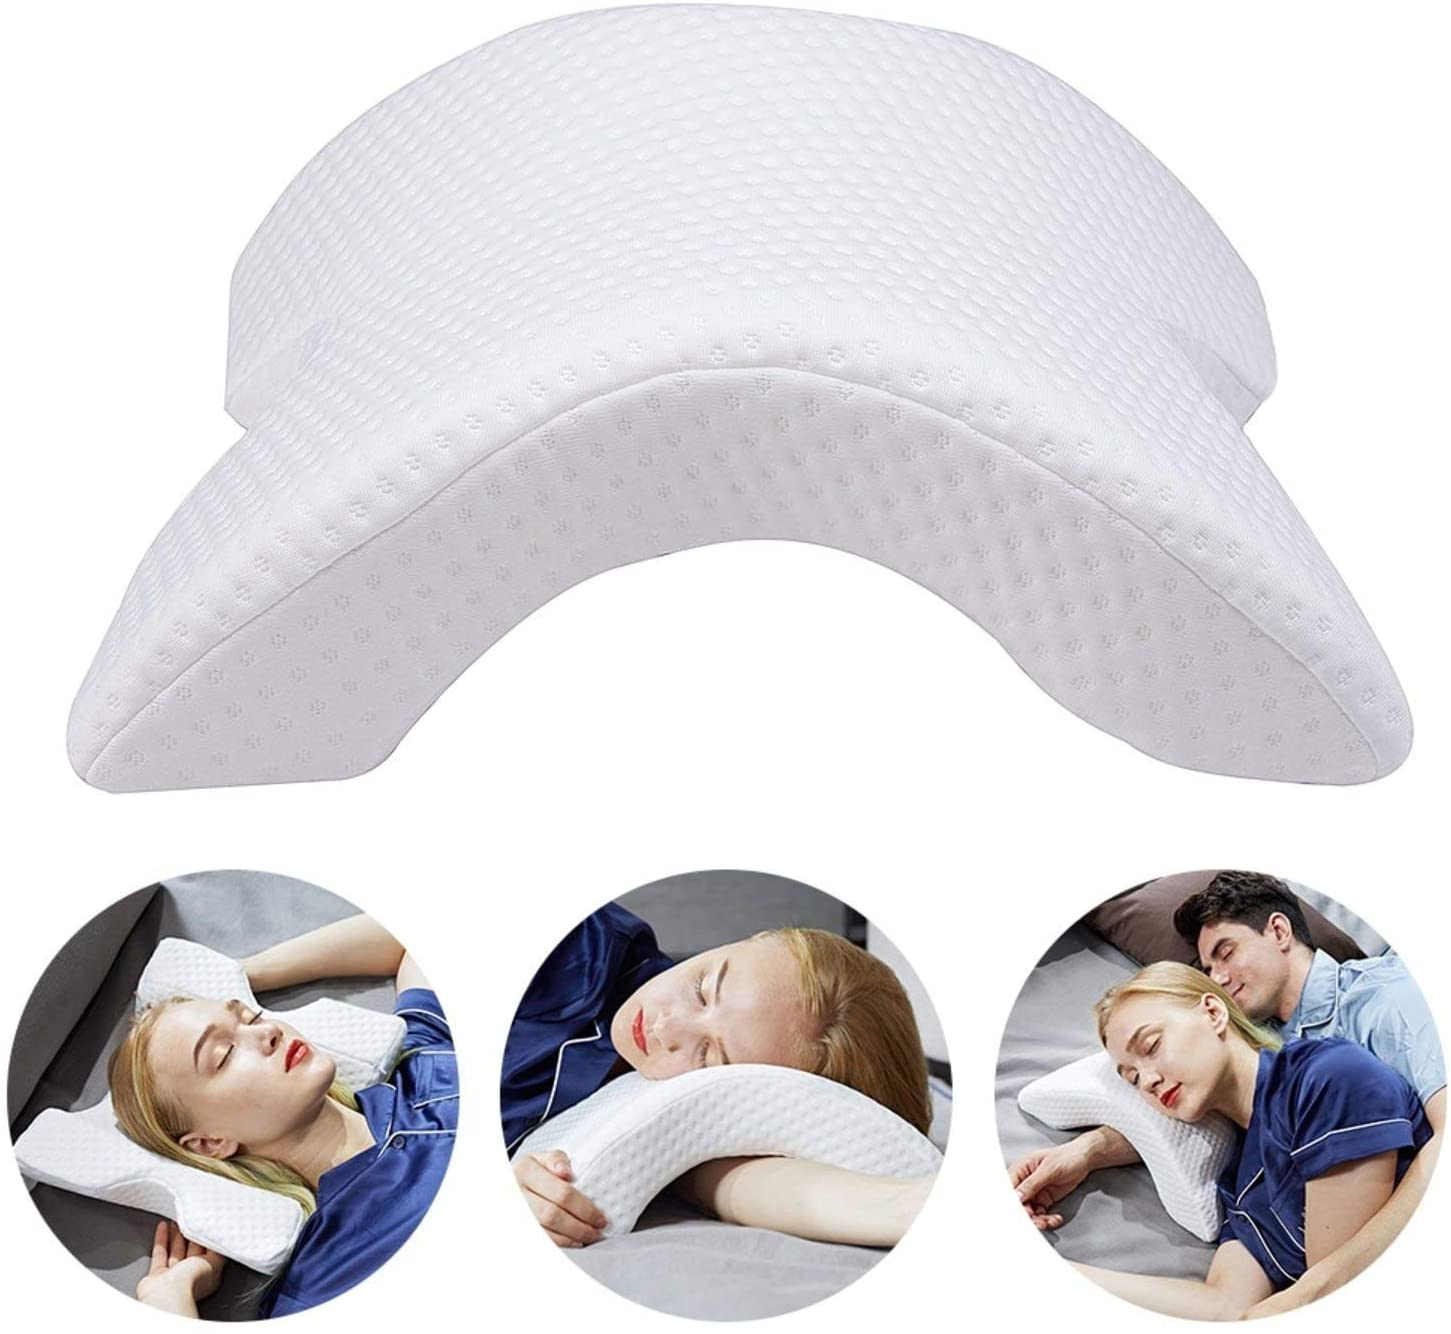 DEAYU 100% Memory Foam Arched Pillow - Couple Cuddle Sleep Pillow - Anti Hand Numb